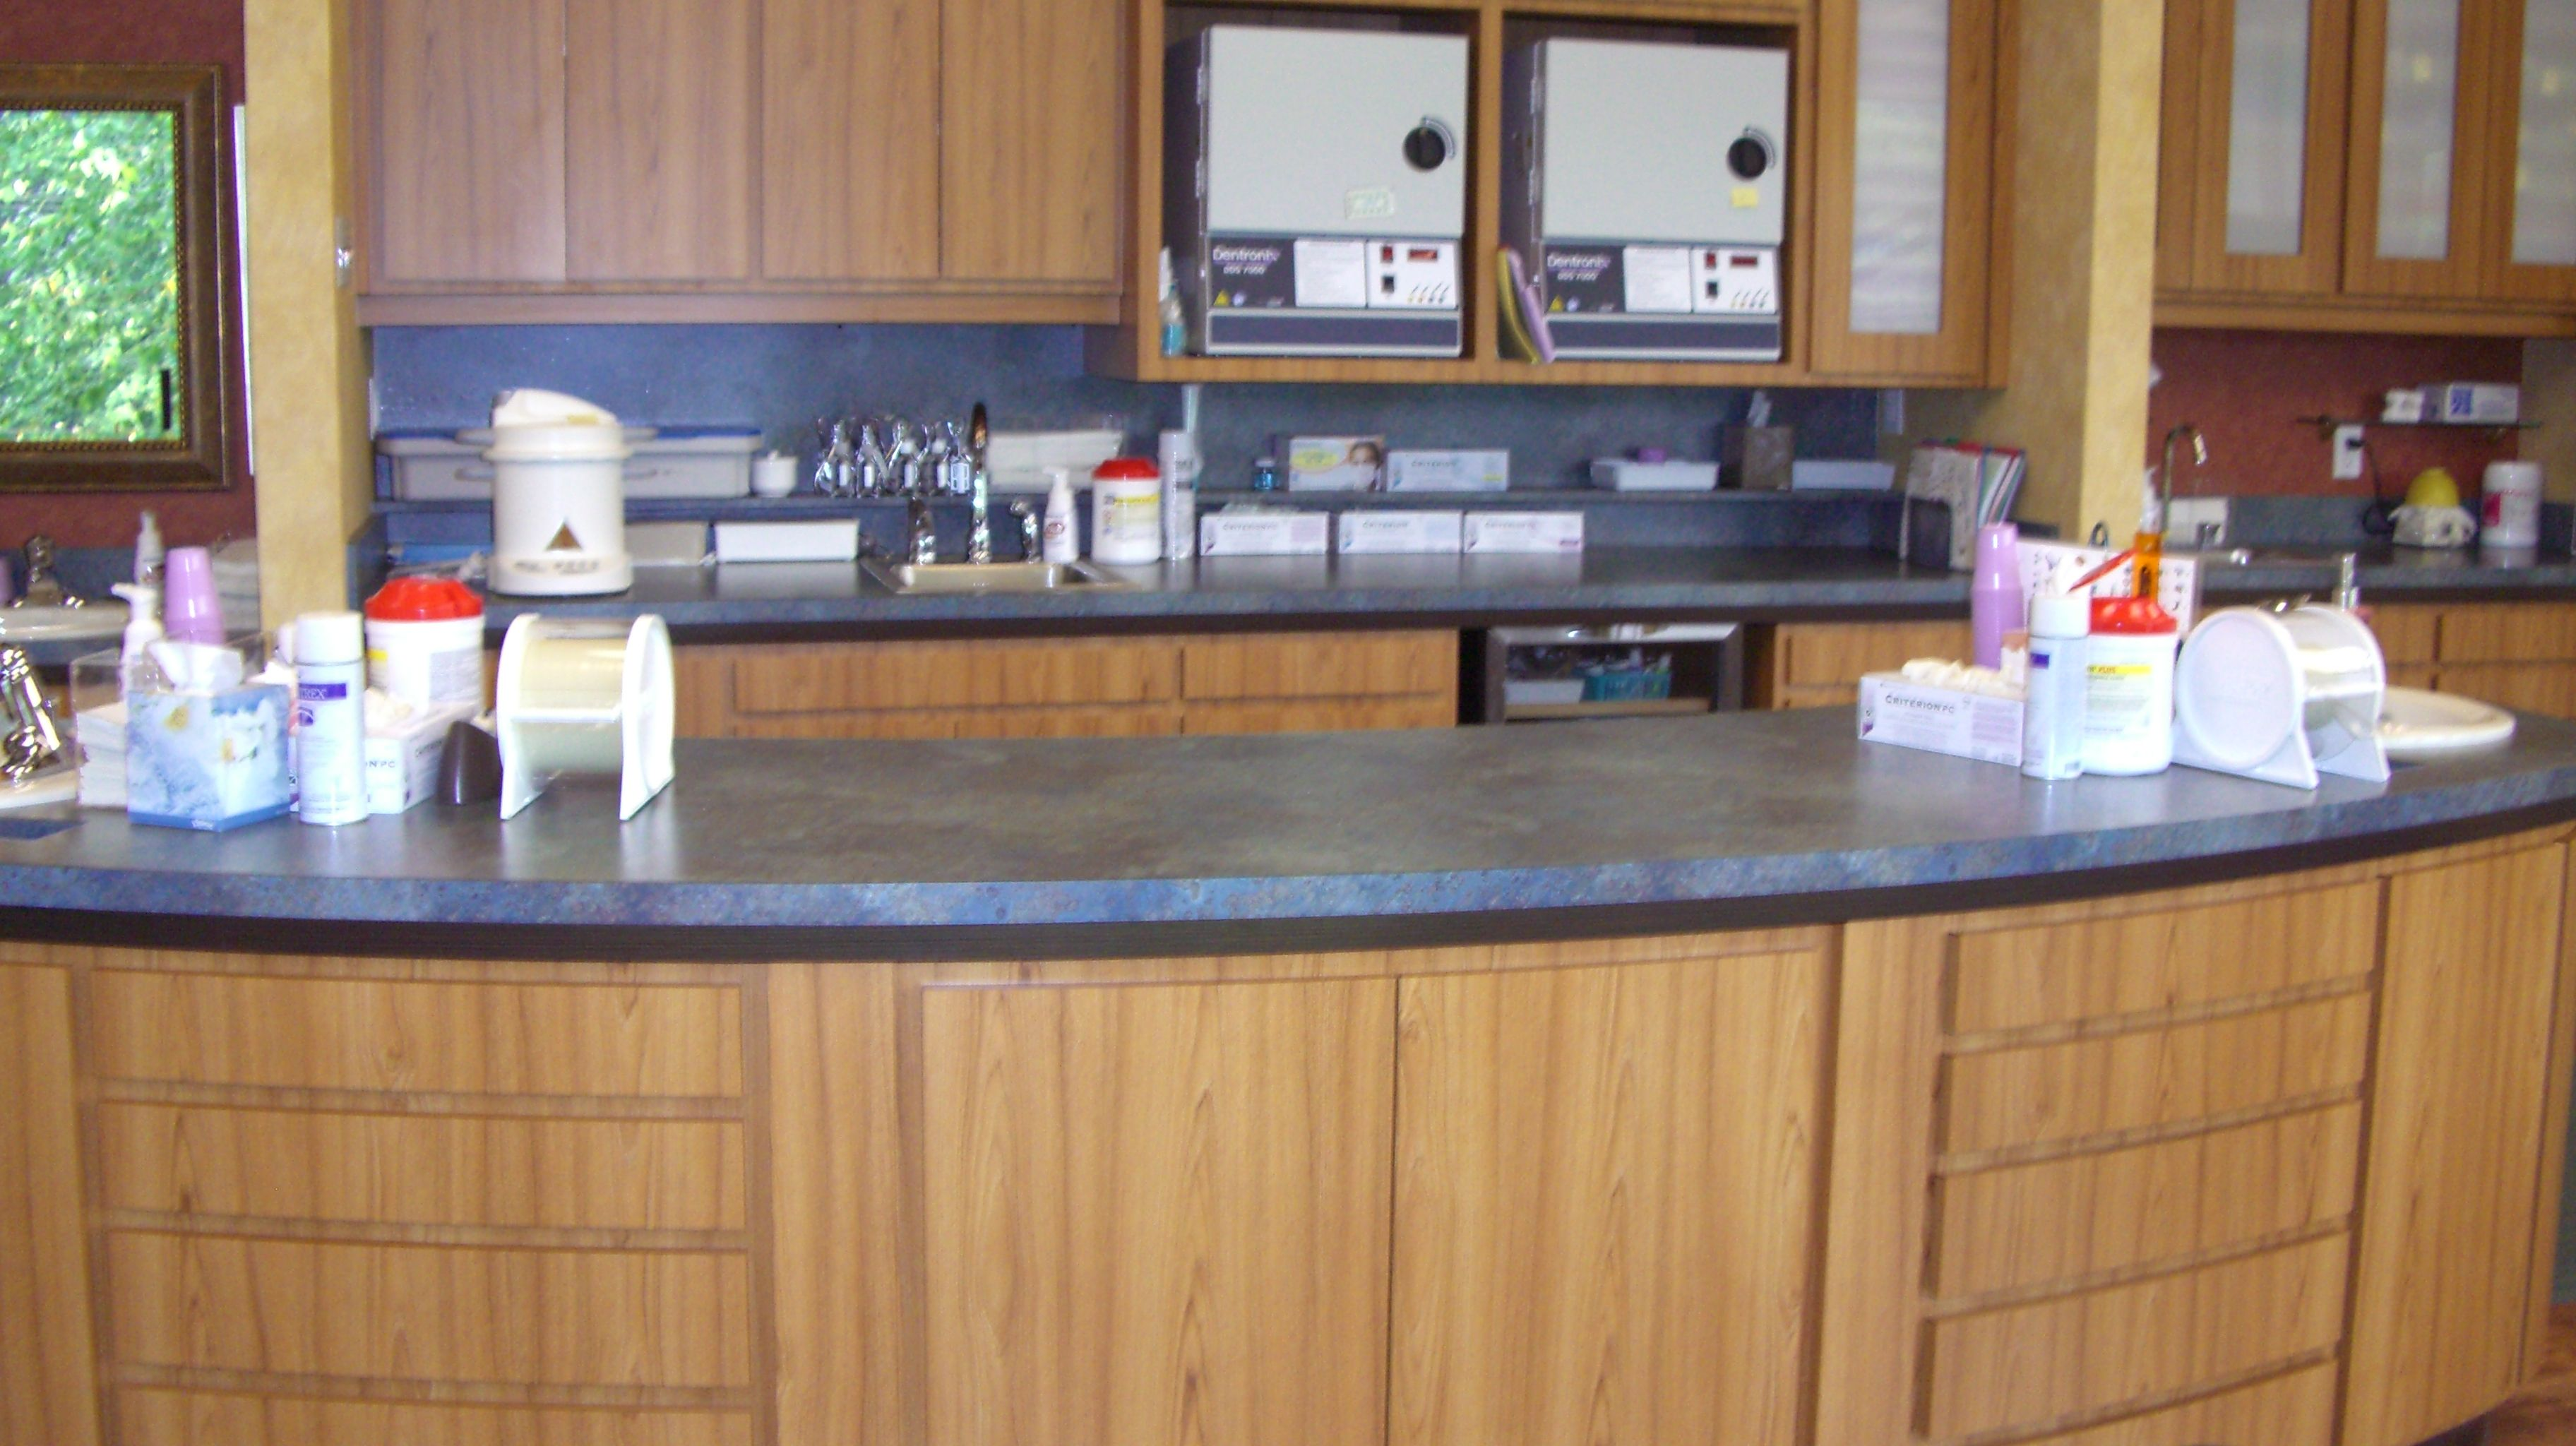 Orthodontic Station Kitchen Cabinets Orthodontic Office